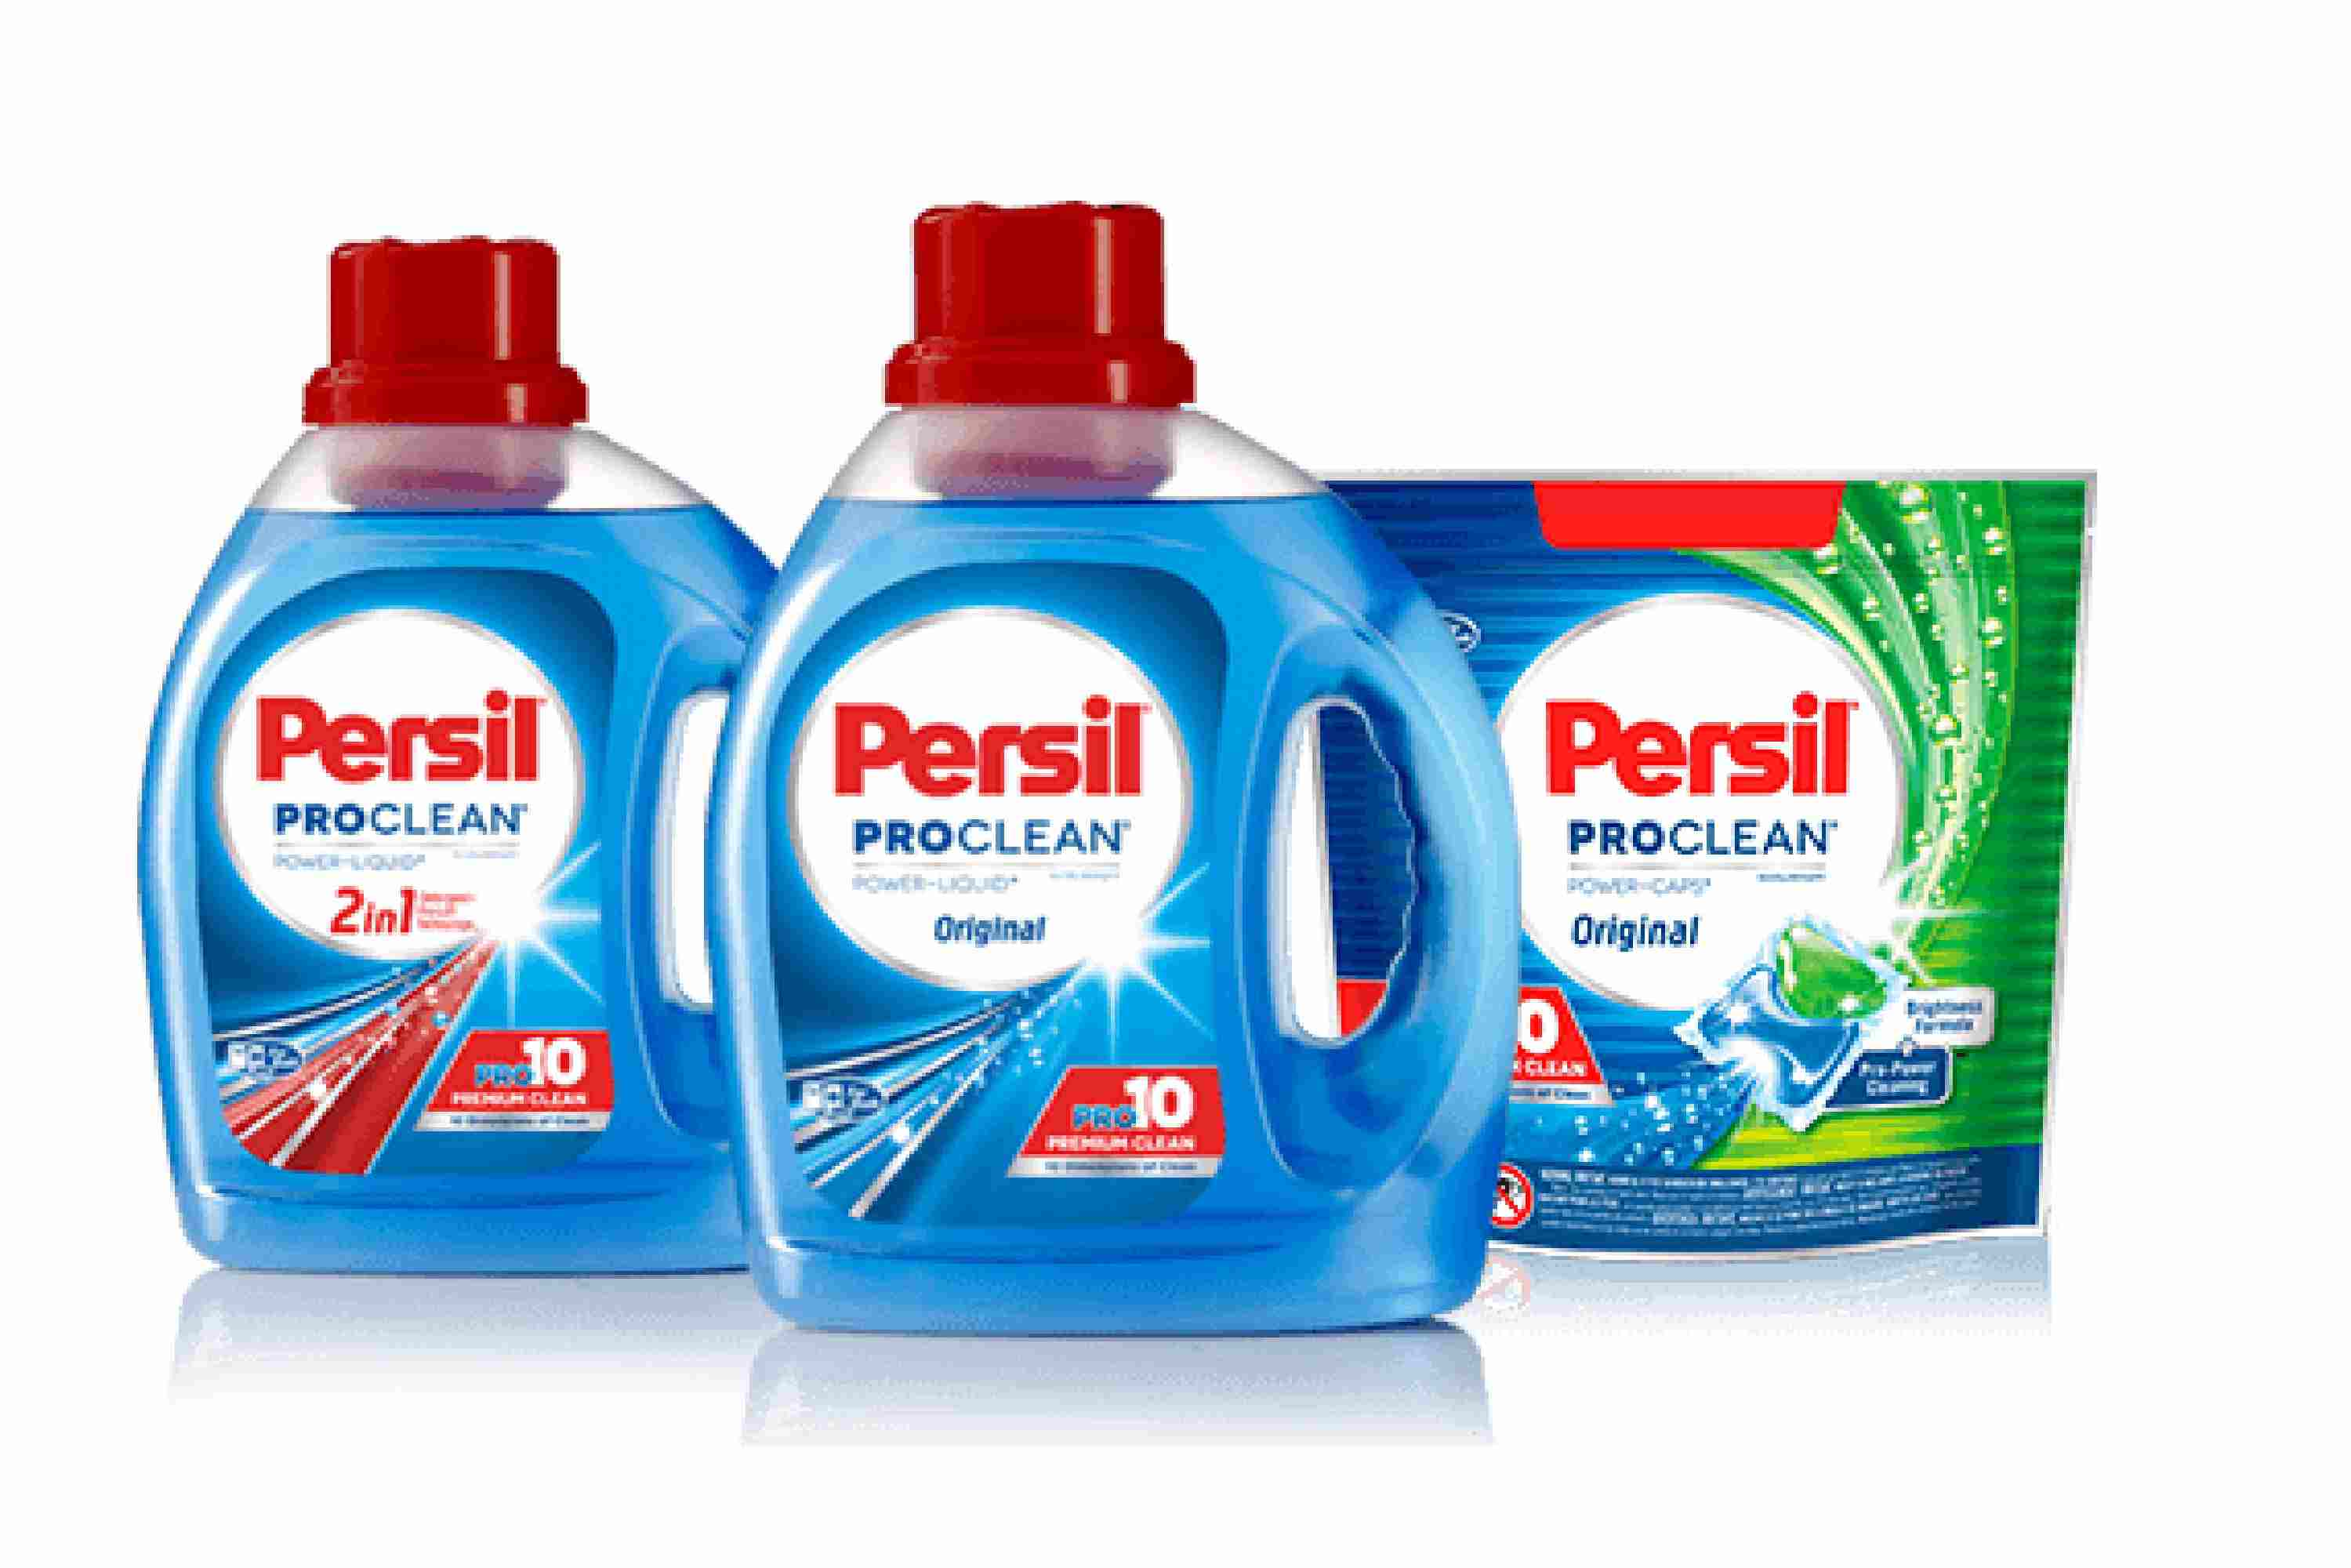 Persil Detergent Courtesy Of